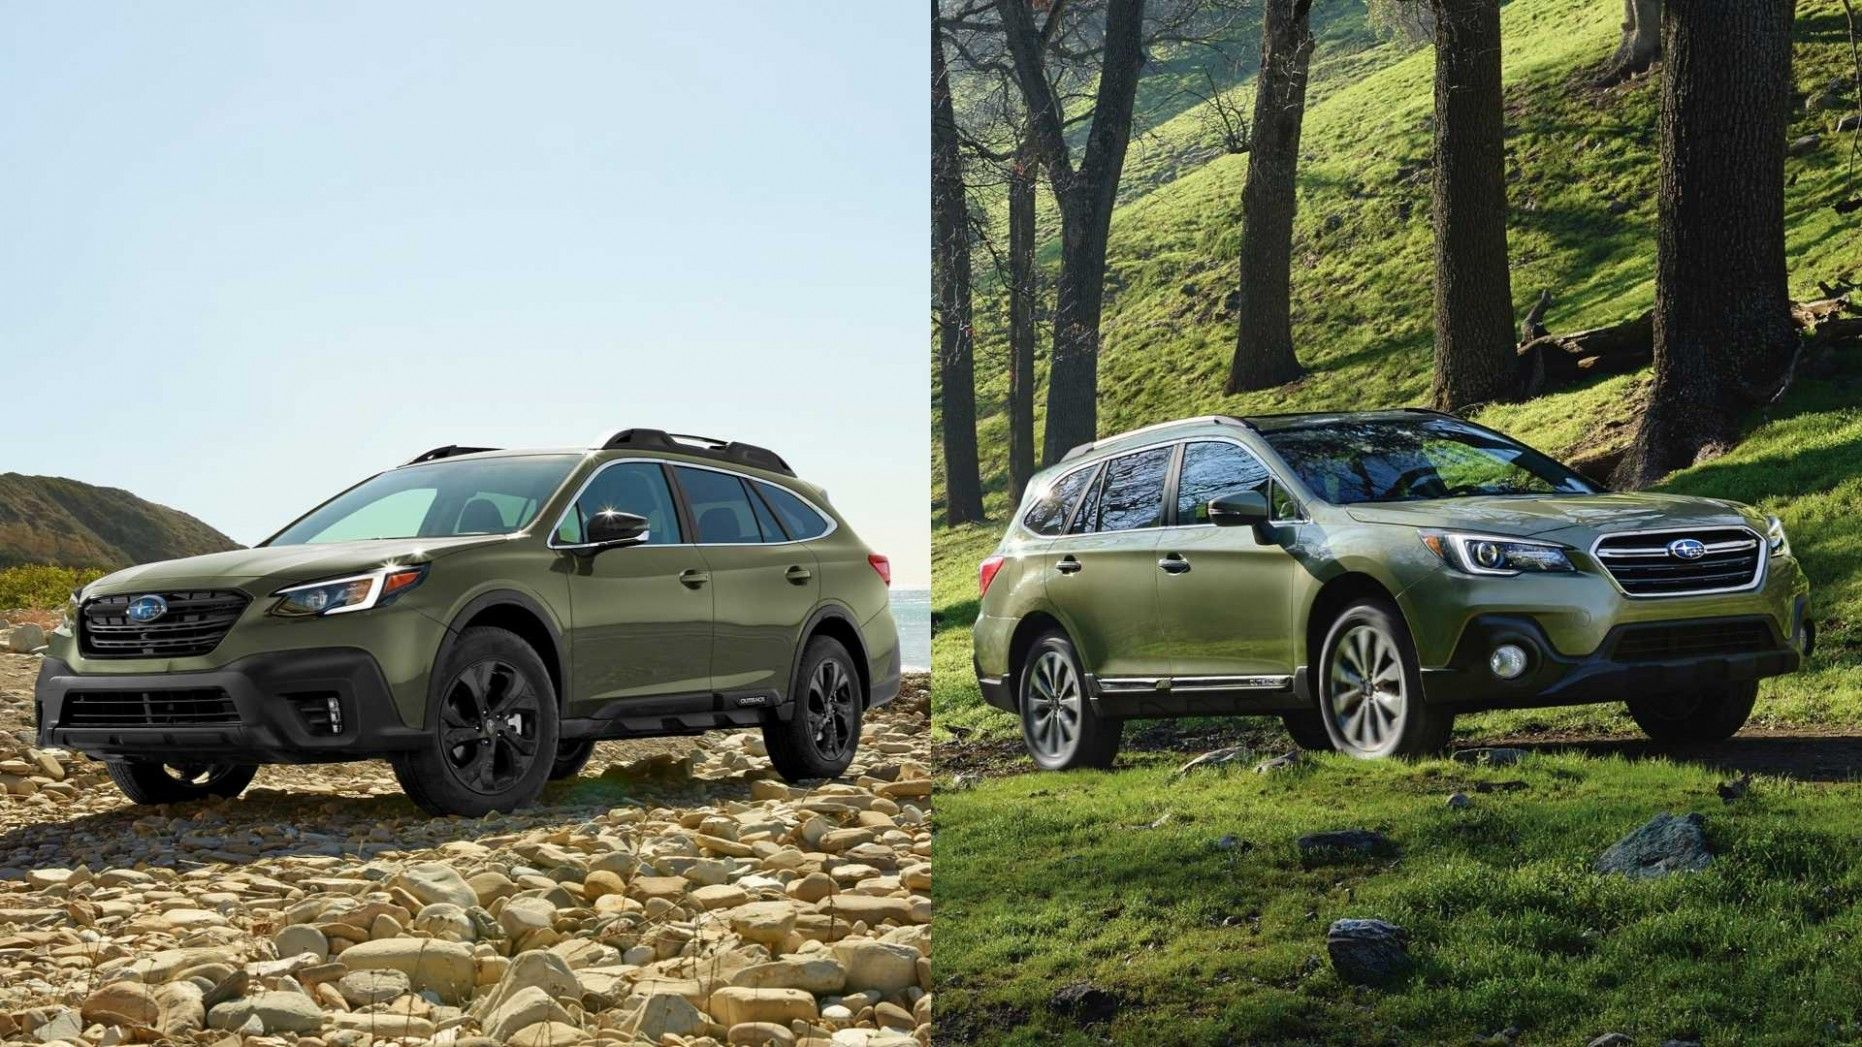 2021 Subaru Outback Turbo Hybrid Price, Design and Review